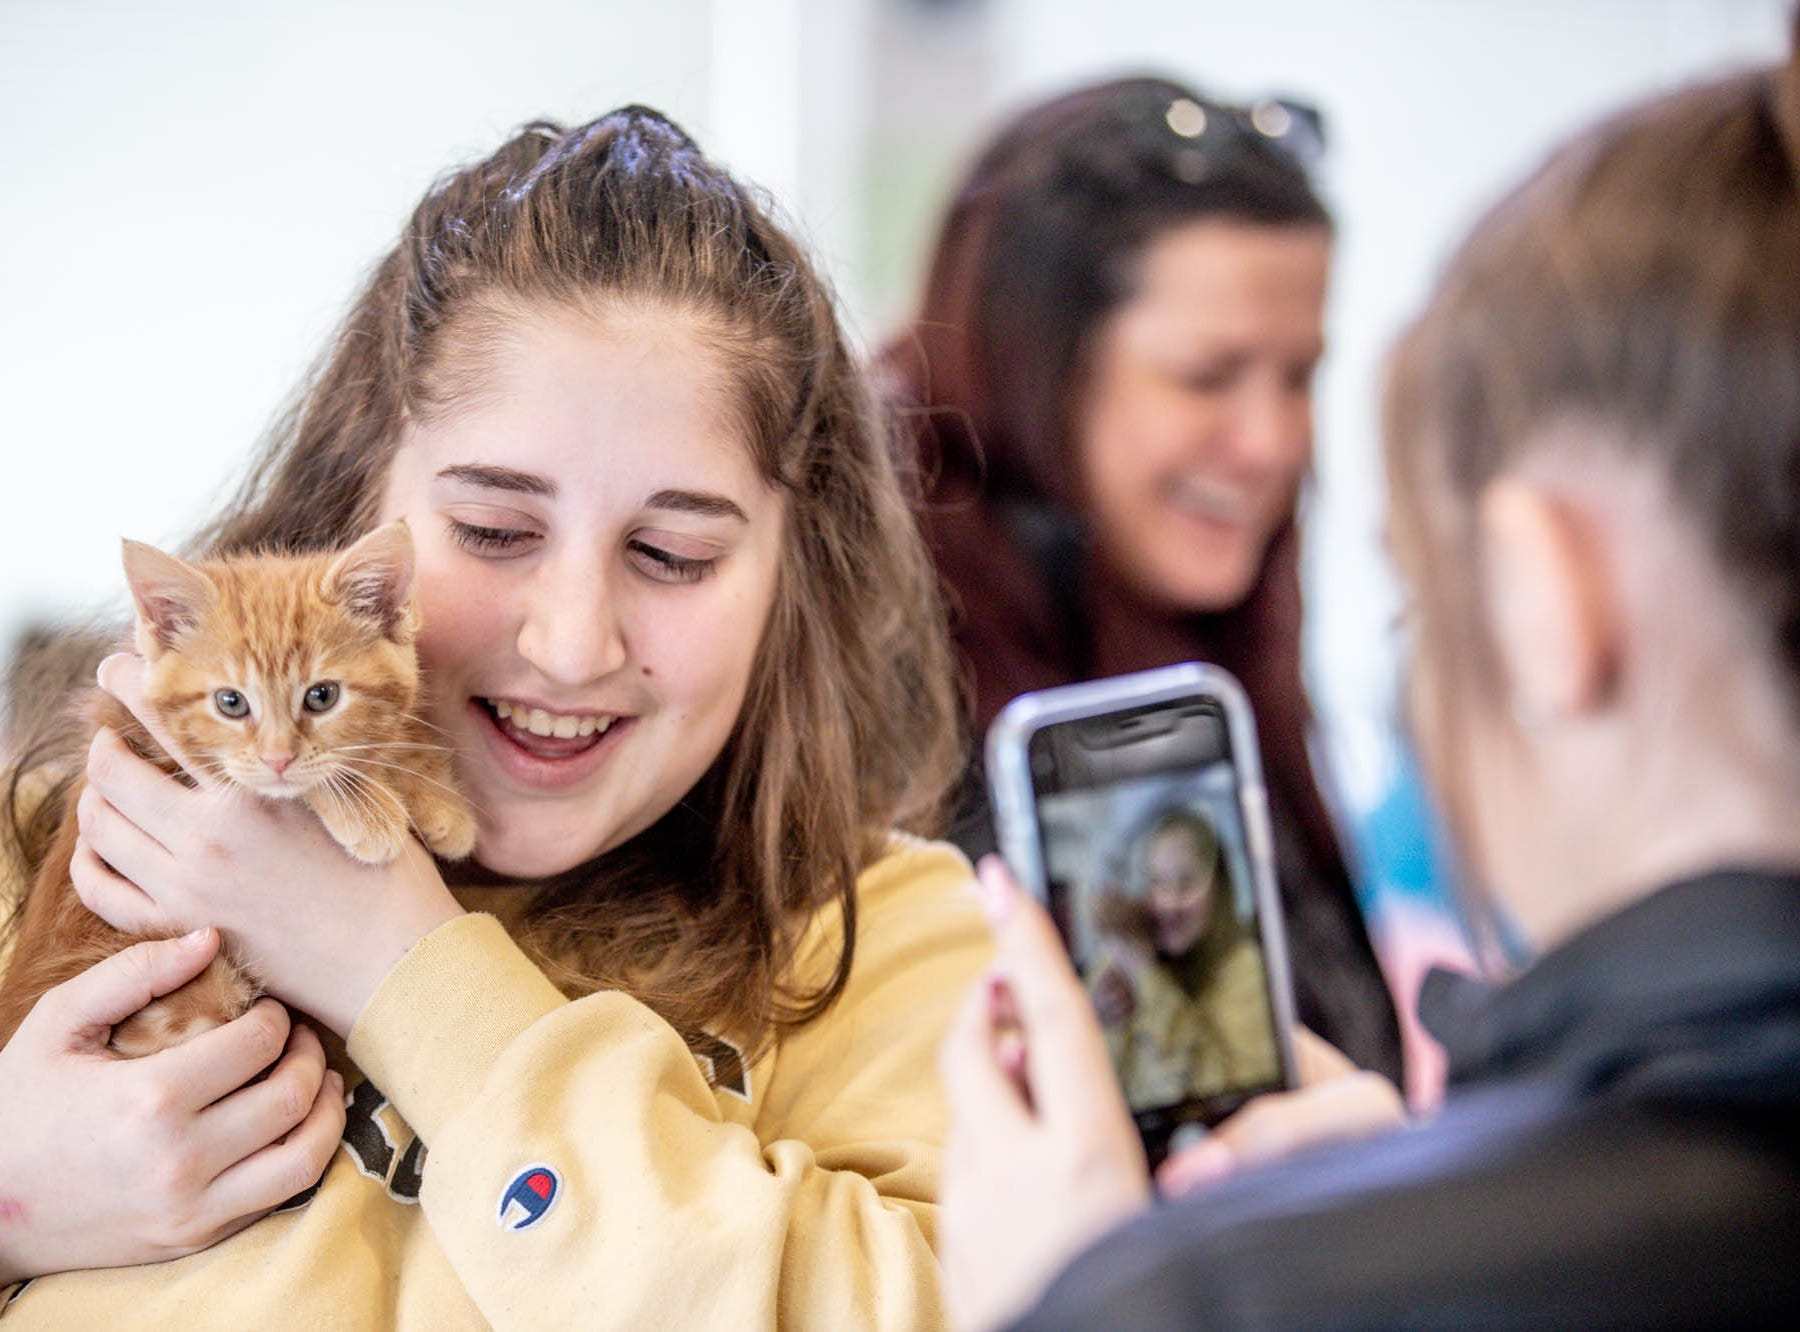 Emily Parsons is photographed by her sister, Elizabeth Parsons, during the Puppy and Kitten Baby Shower, held at Indy Humane on Sunday, March 10, 2019. The event educates families on Indy Humane's foster care program, as Fosters are needed in the spring during puppy and kitten season.